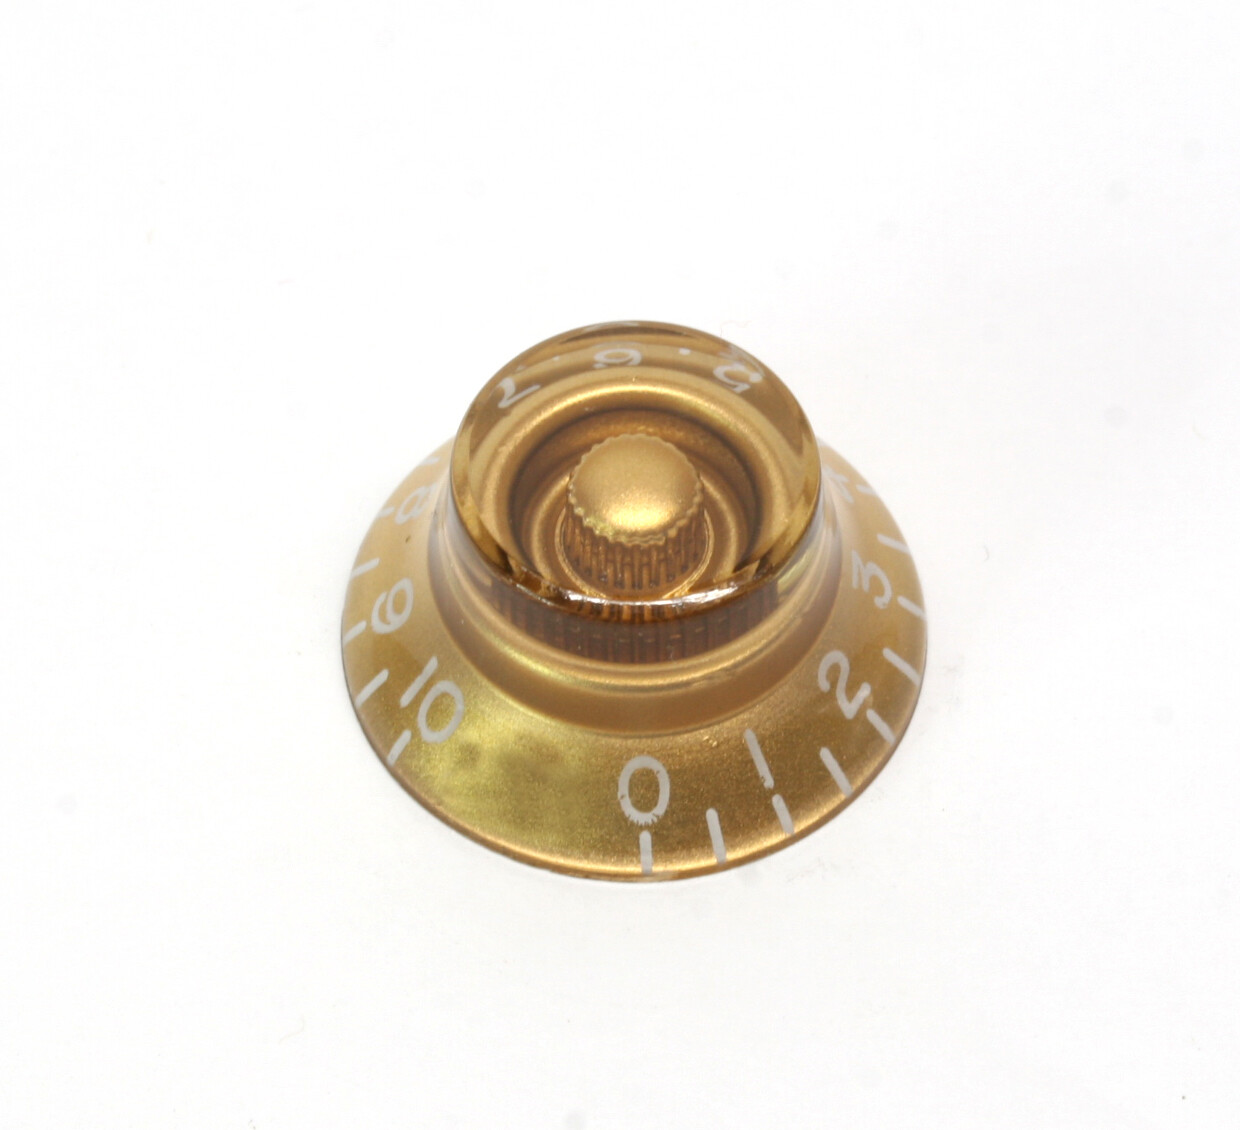 Gold Bell knob, vintage style numbers, fits USA split shaft pots.